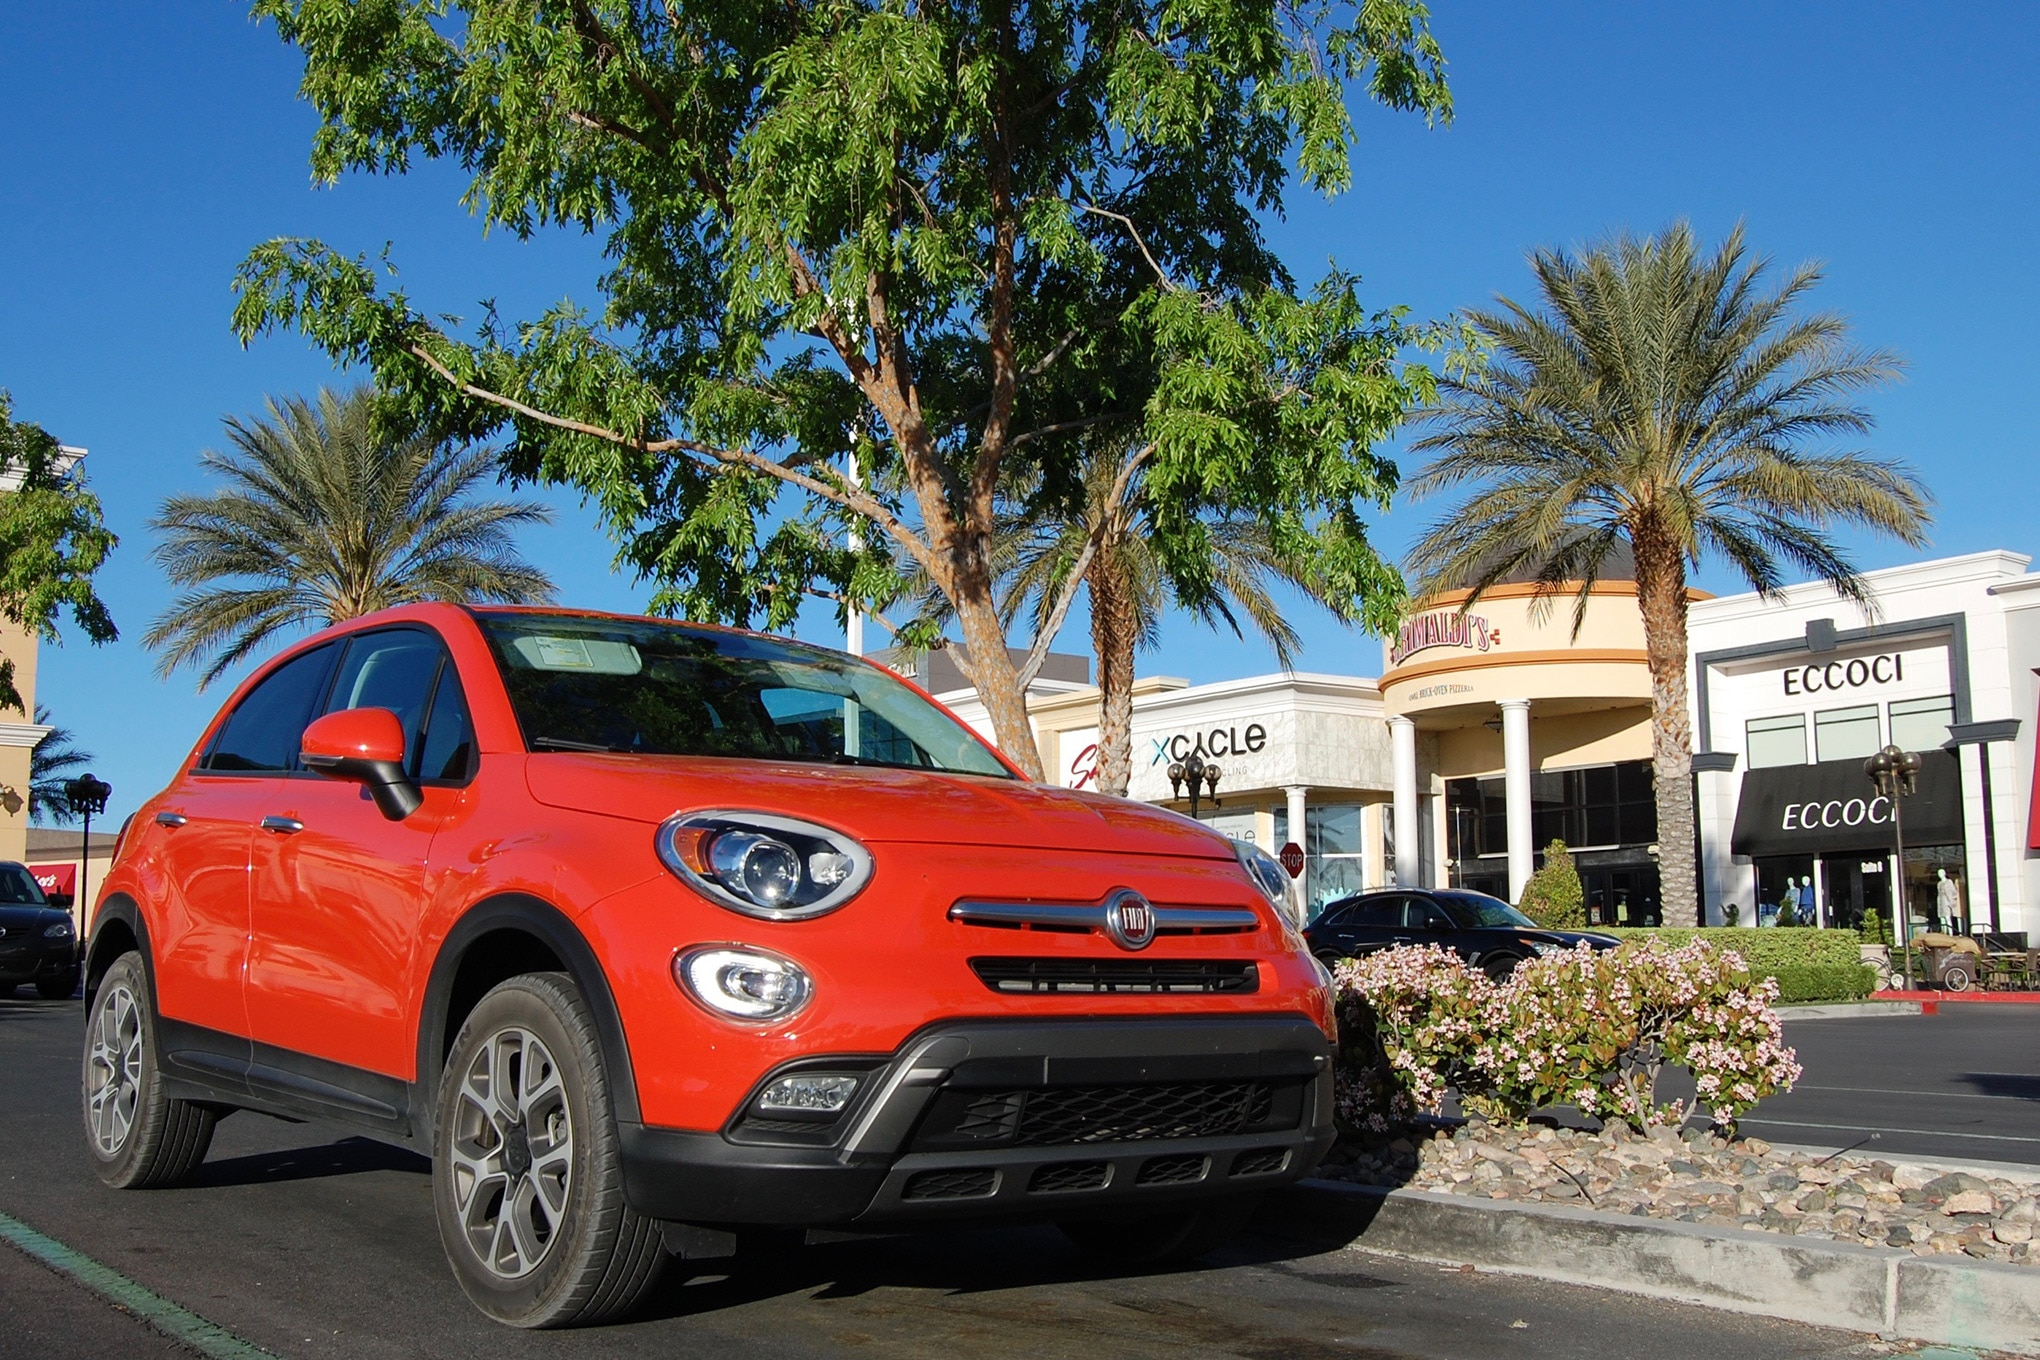 Four Seasons 2016 Fiat 500X Trekking Las Vegas Update 07